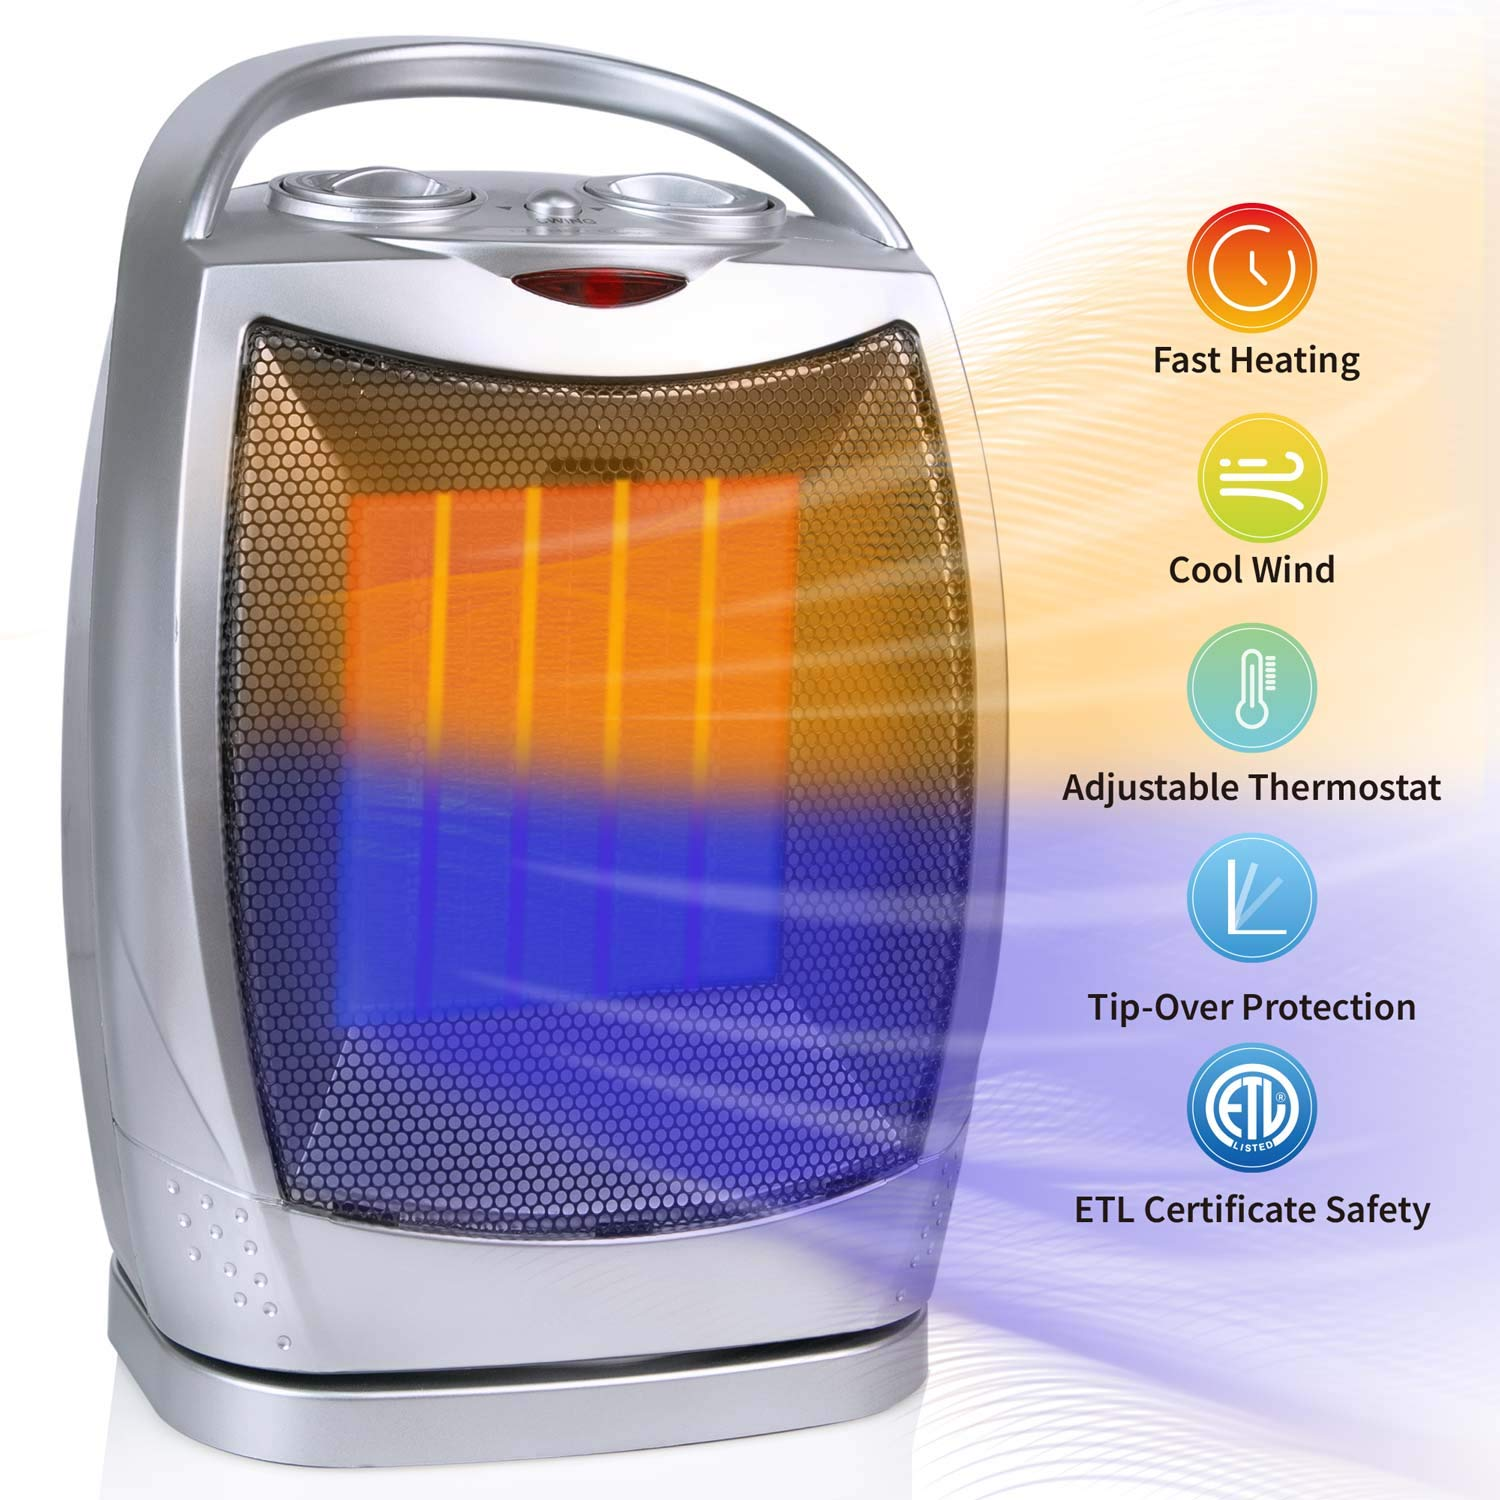 750W/1500W Oscillating Ceramic Space Heater with Adjustable Thermostat, Portable Personal Heater with Over-Heat & Tip-Over Protection for Home and Office, ETL Listed